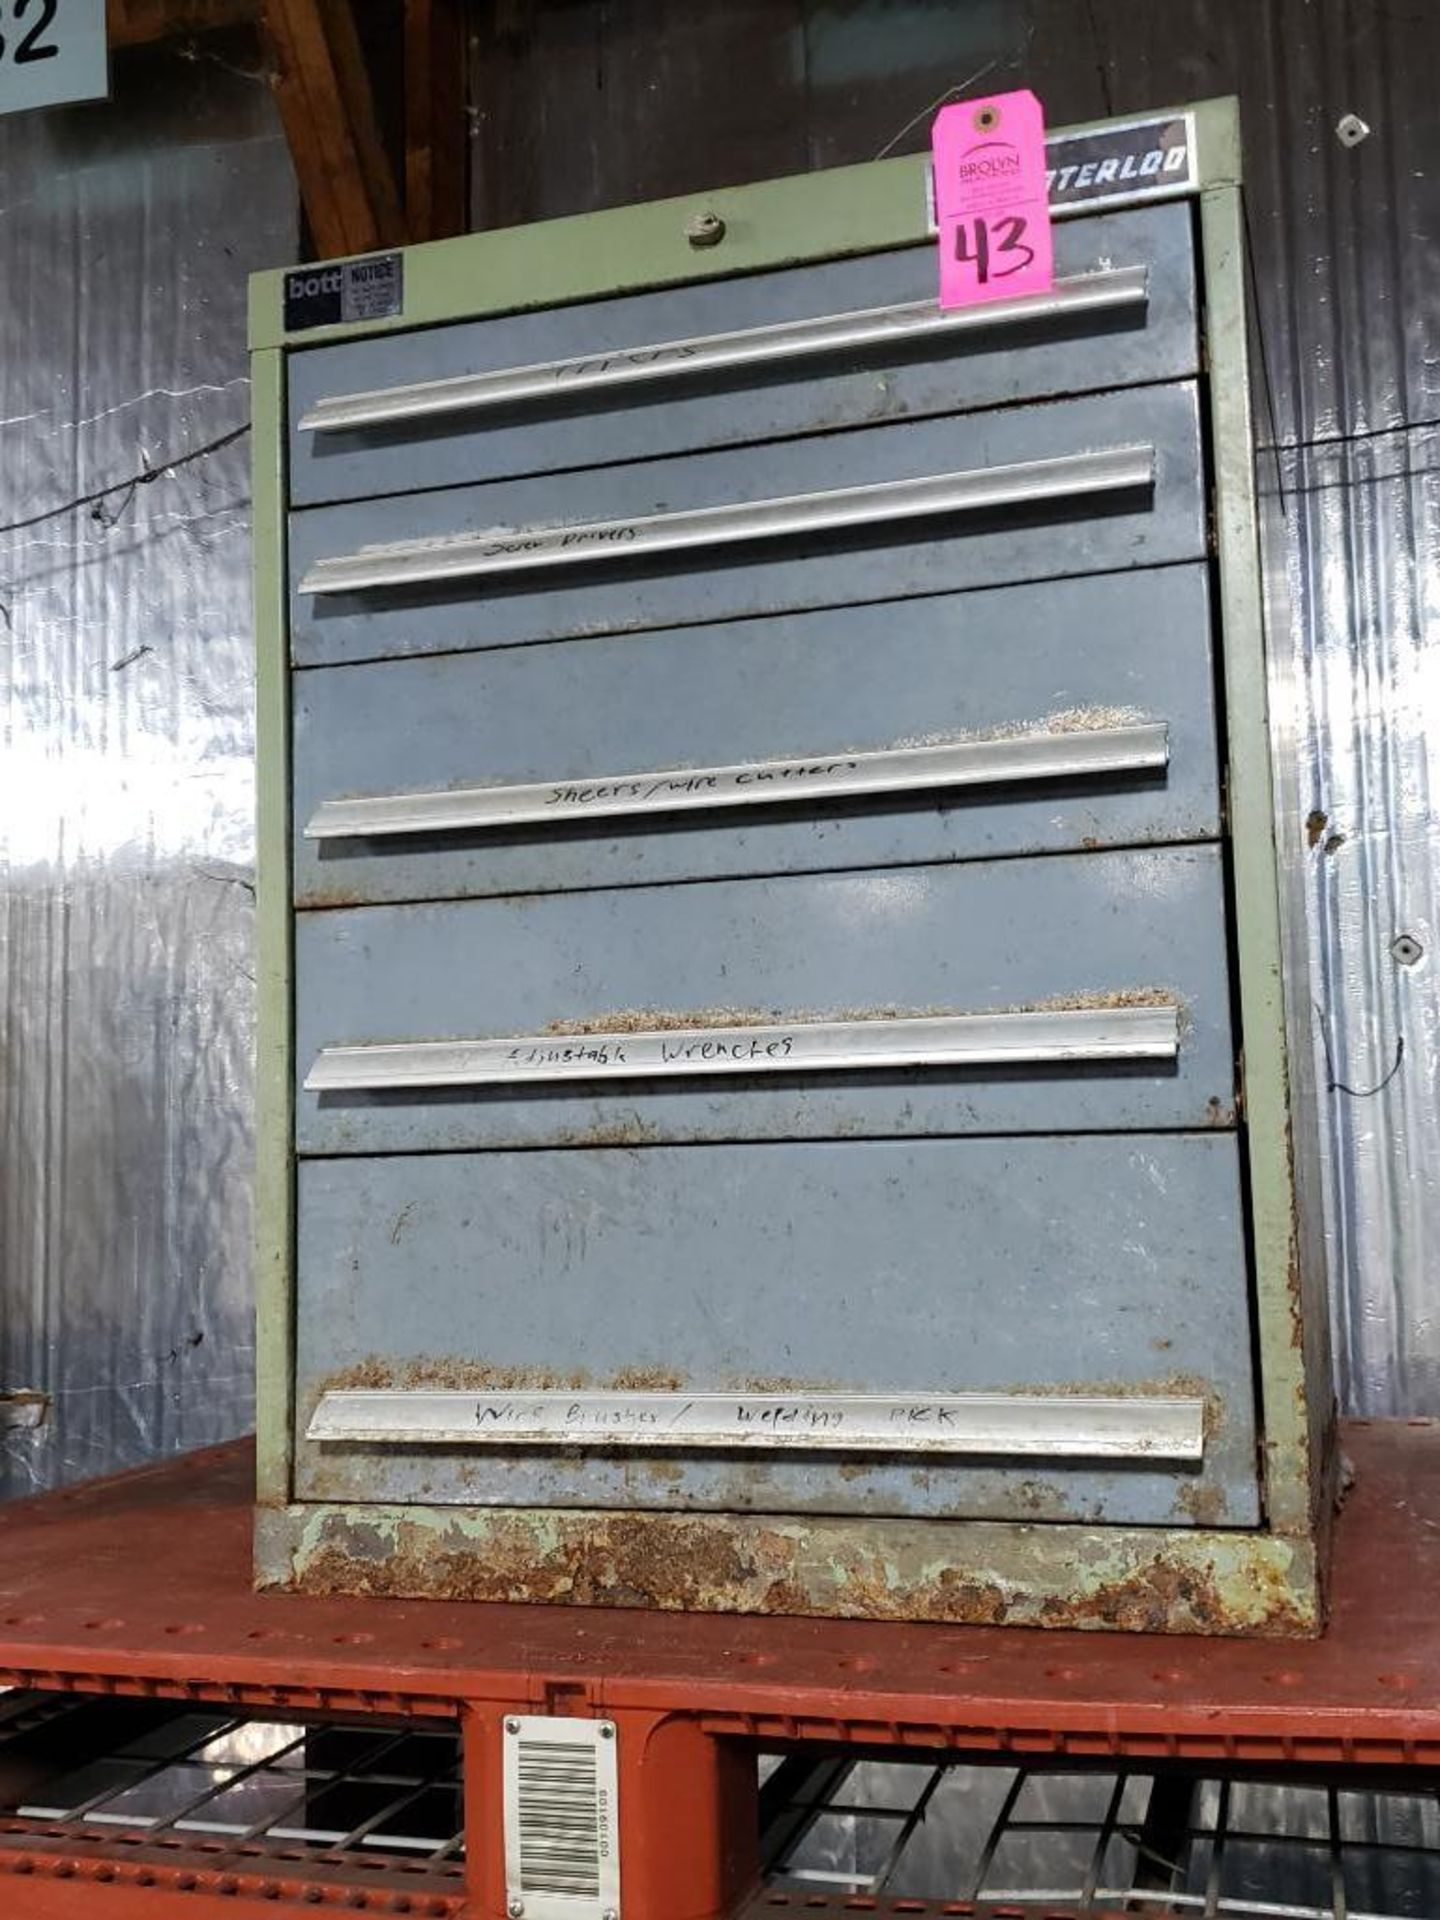 Lot 43 - 5 drawer Bott Waterloo tool cabinet. Overall dimensions 31.5Tx23Wx24D.